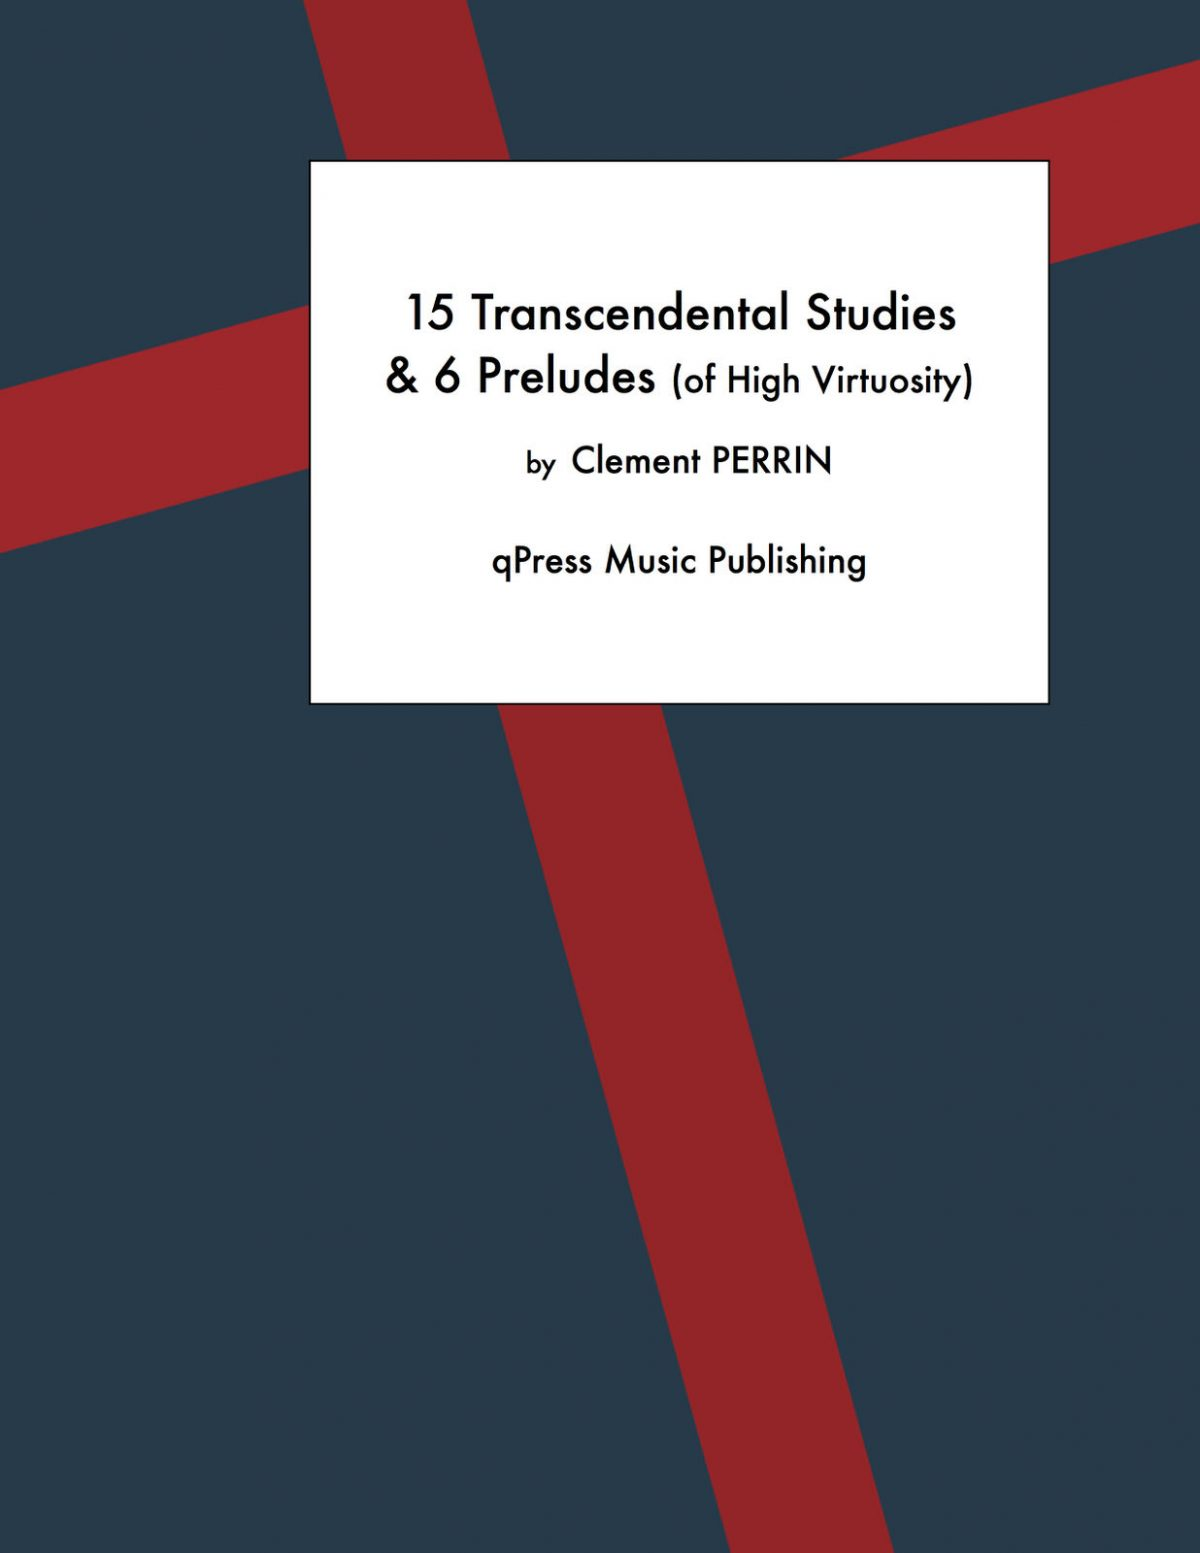 Perrin, 15 Transcendental Studies & 6 Preludes of High Virtuosity